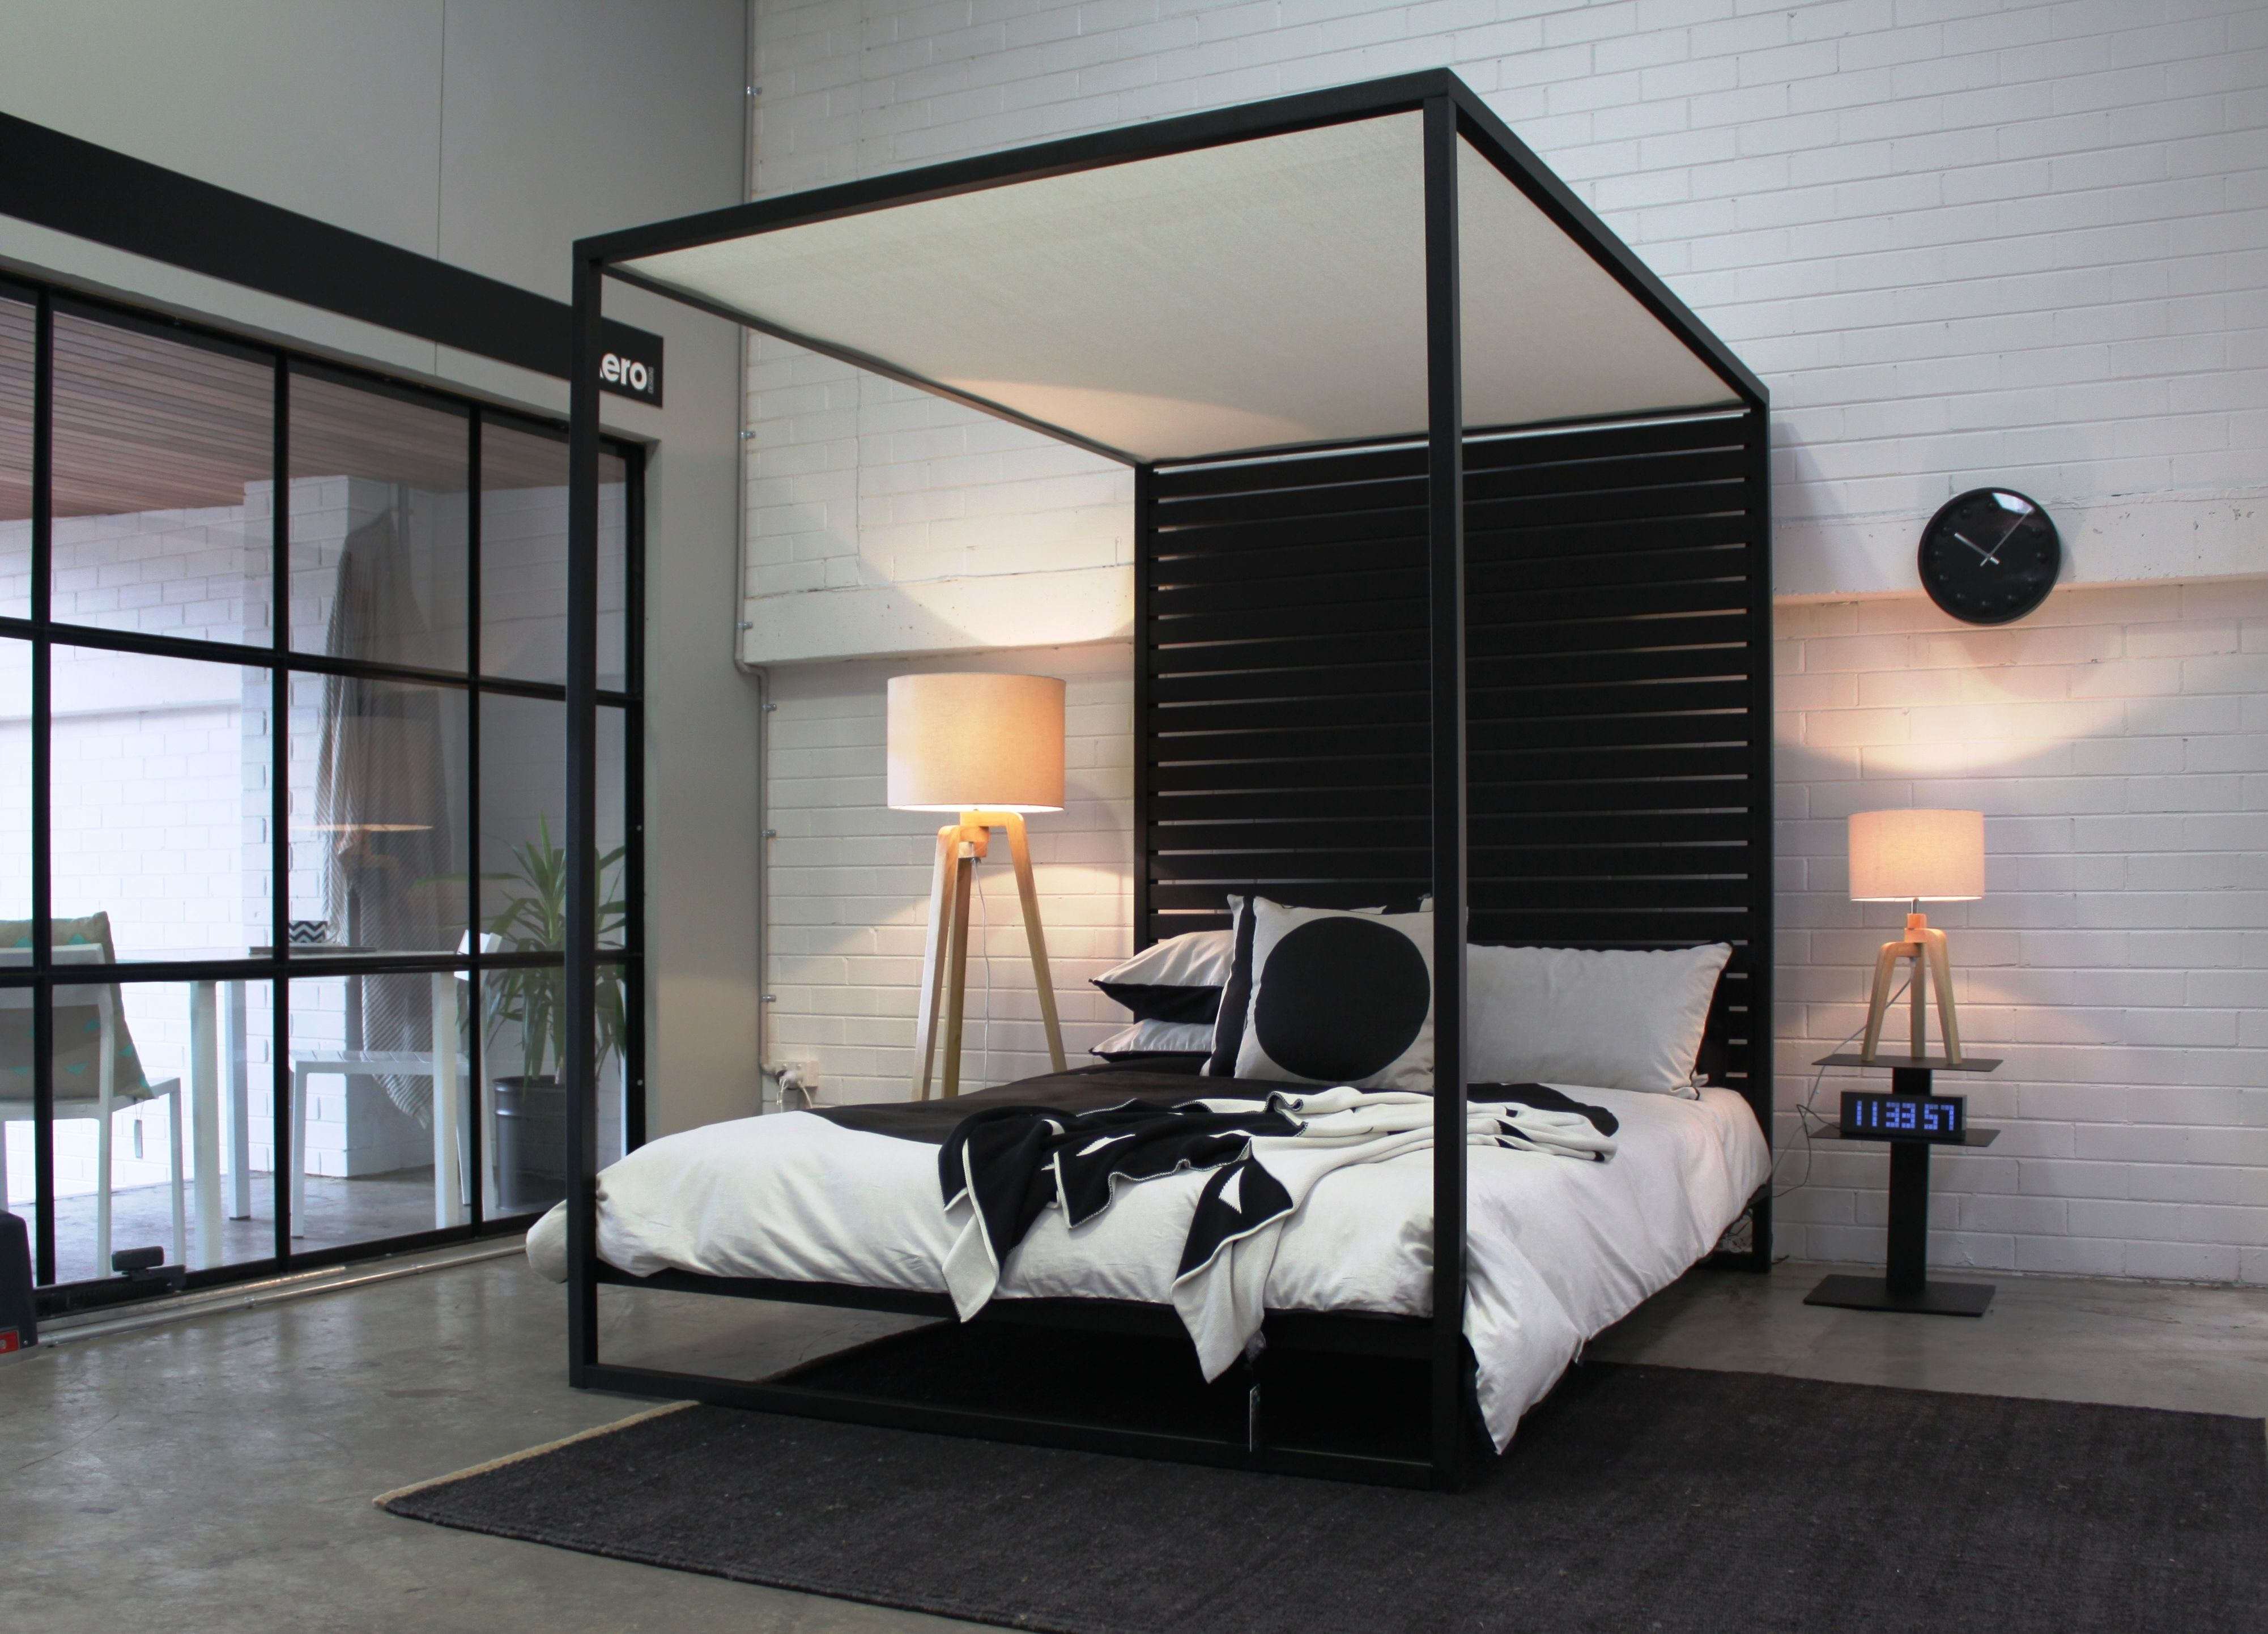 The Four Poster Bed In Textured Black Powder Coat A Modern Take On Clic Bedroom Item Designed And Made Melbourne